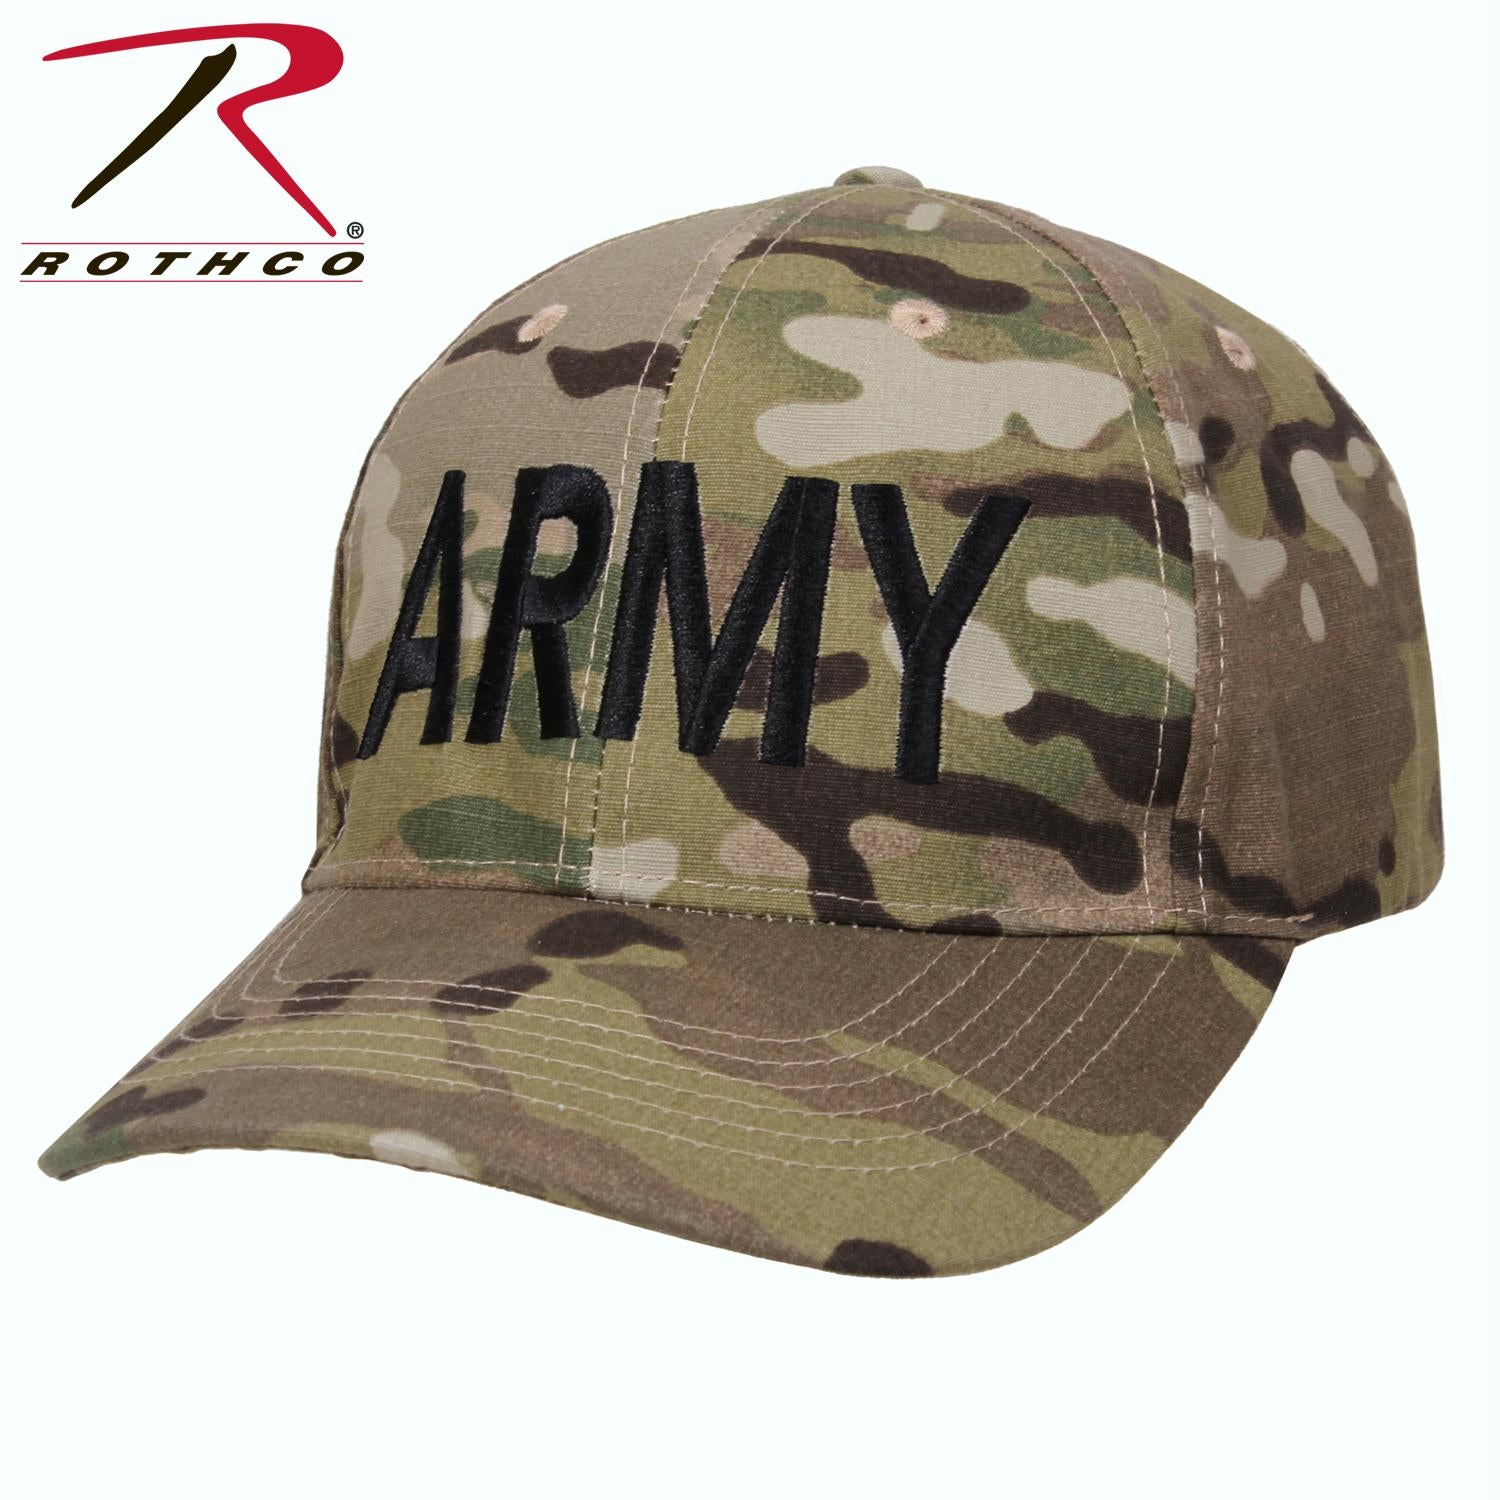 Rothco Low Profile Army MultiCam Hat - MultiCam / One Size